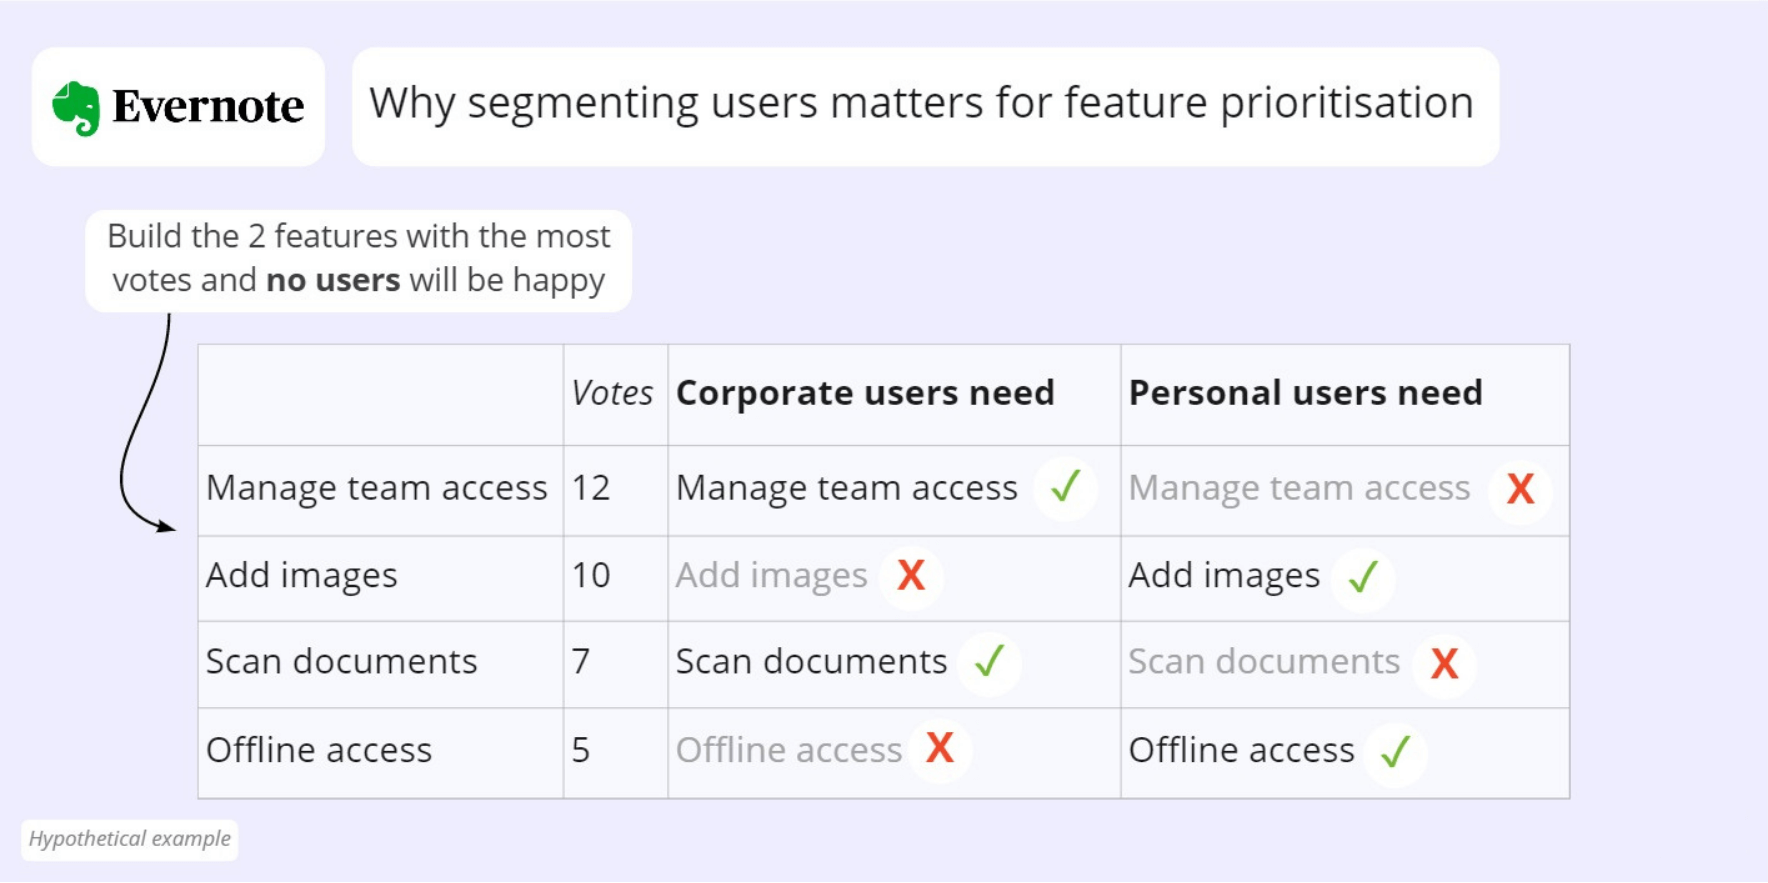 This Evernote example shows that if you build the two features with the most votes no group of users may be satisfied